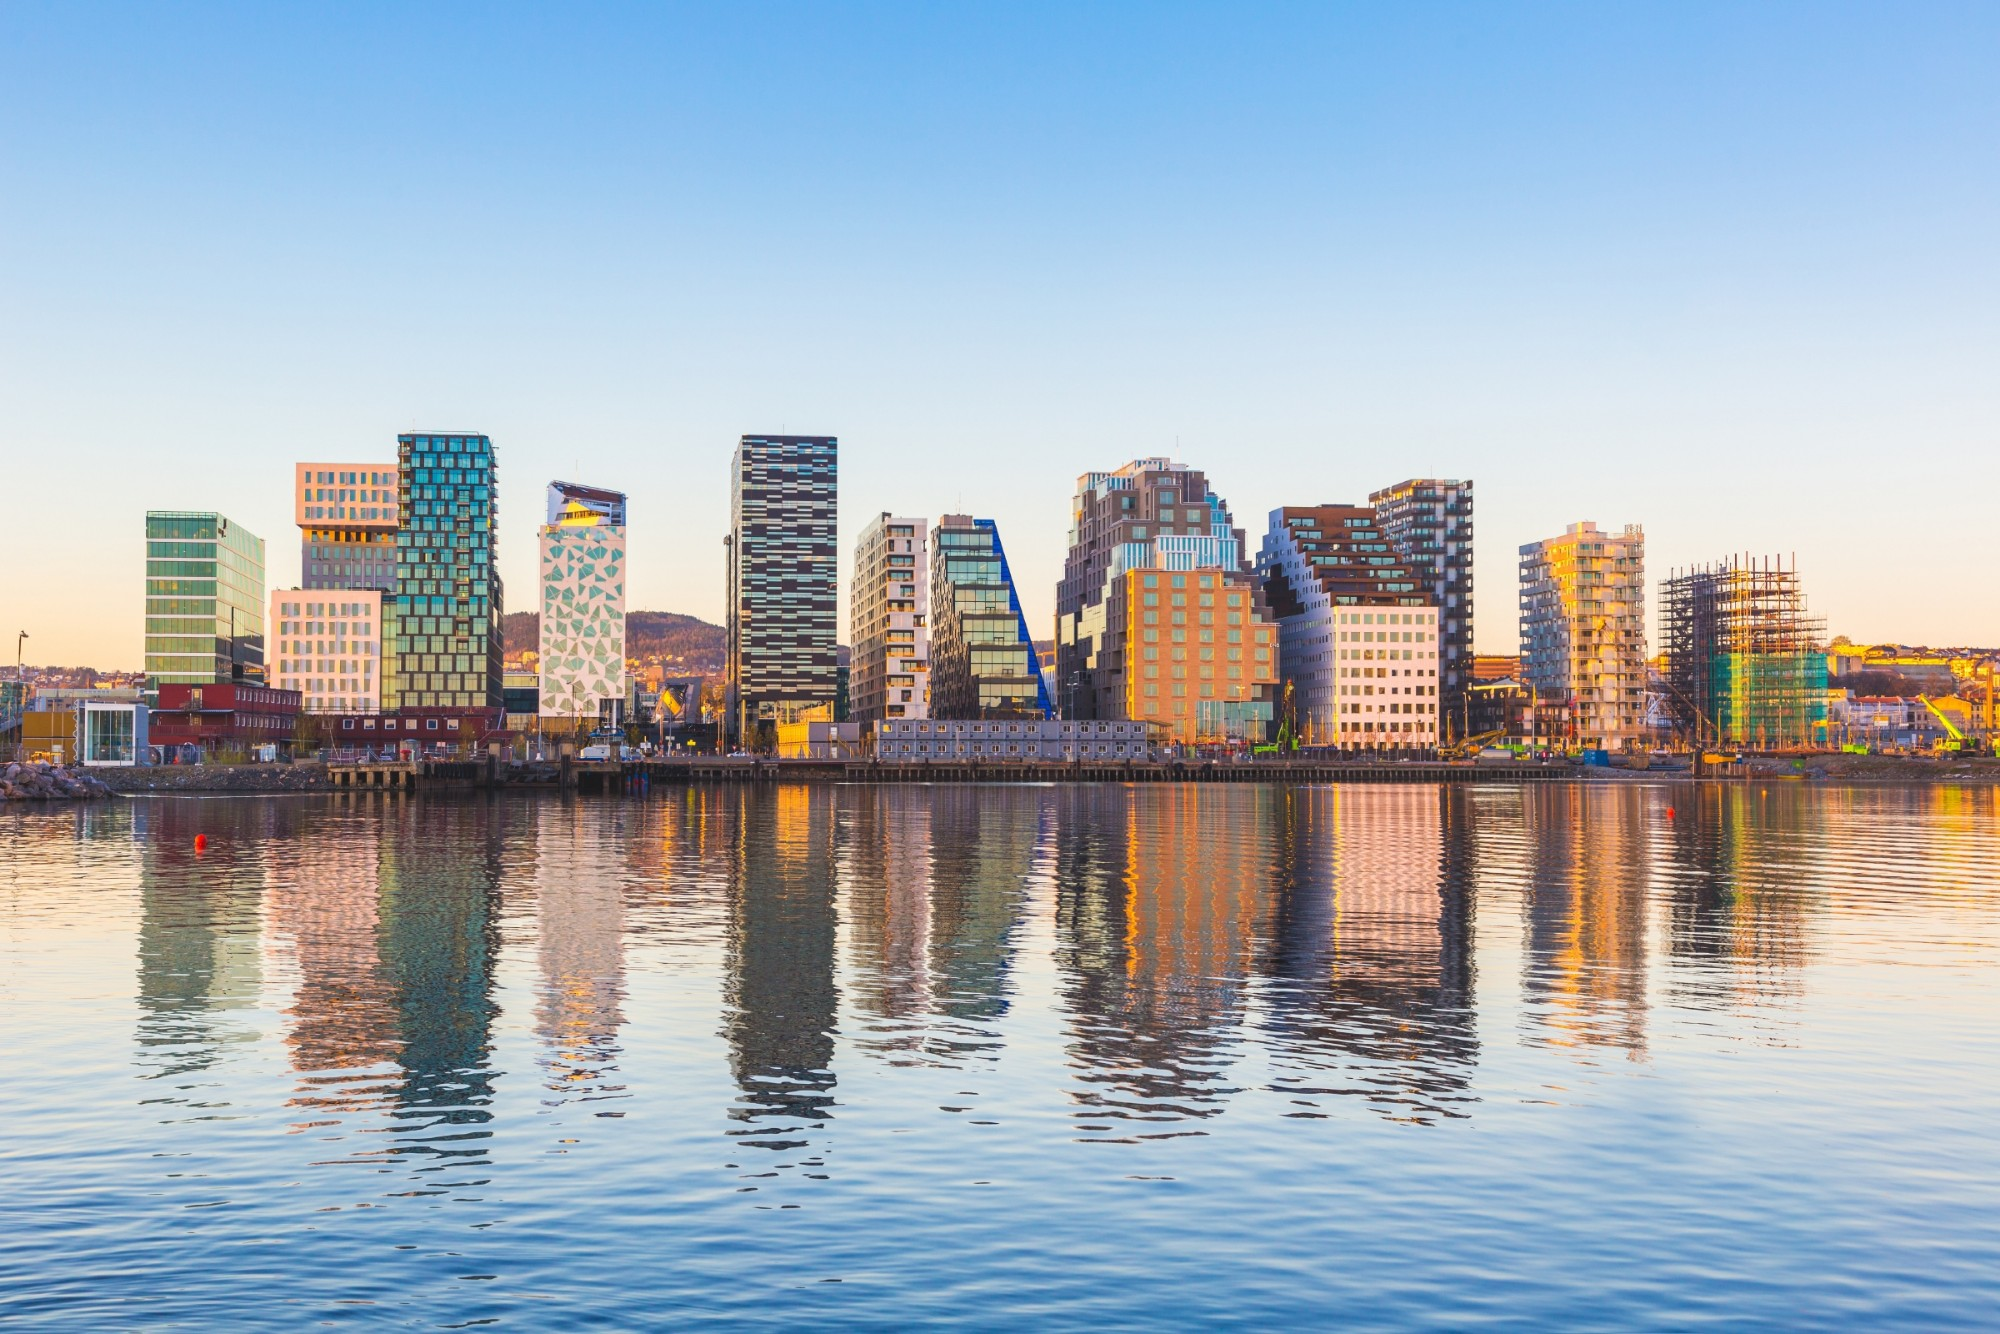 Modern buildings in Oslo, Norway, with their reflection into the water.